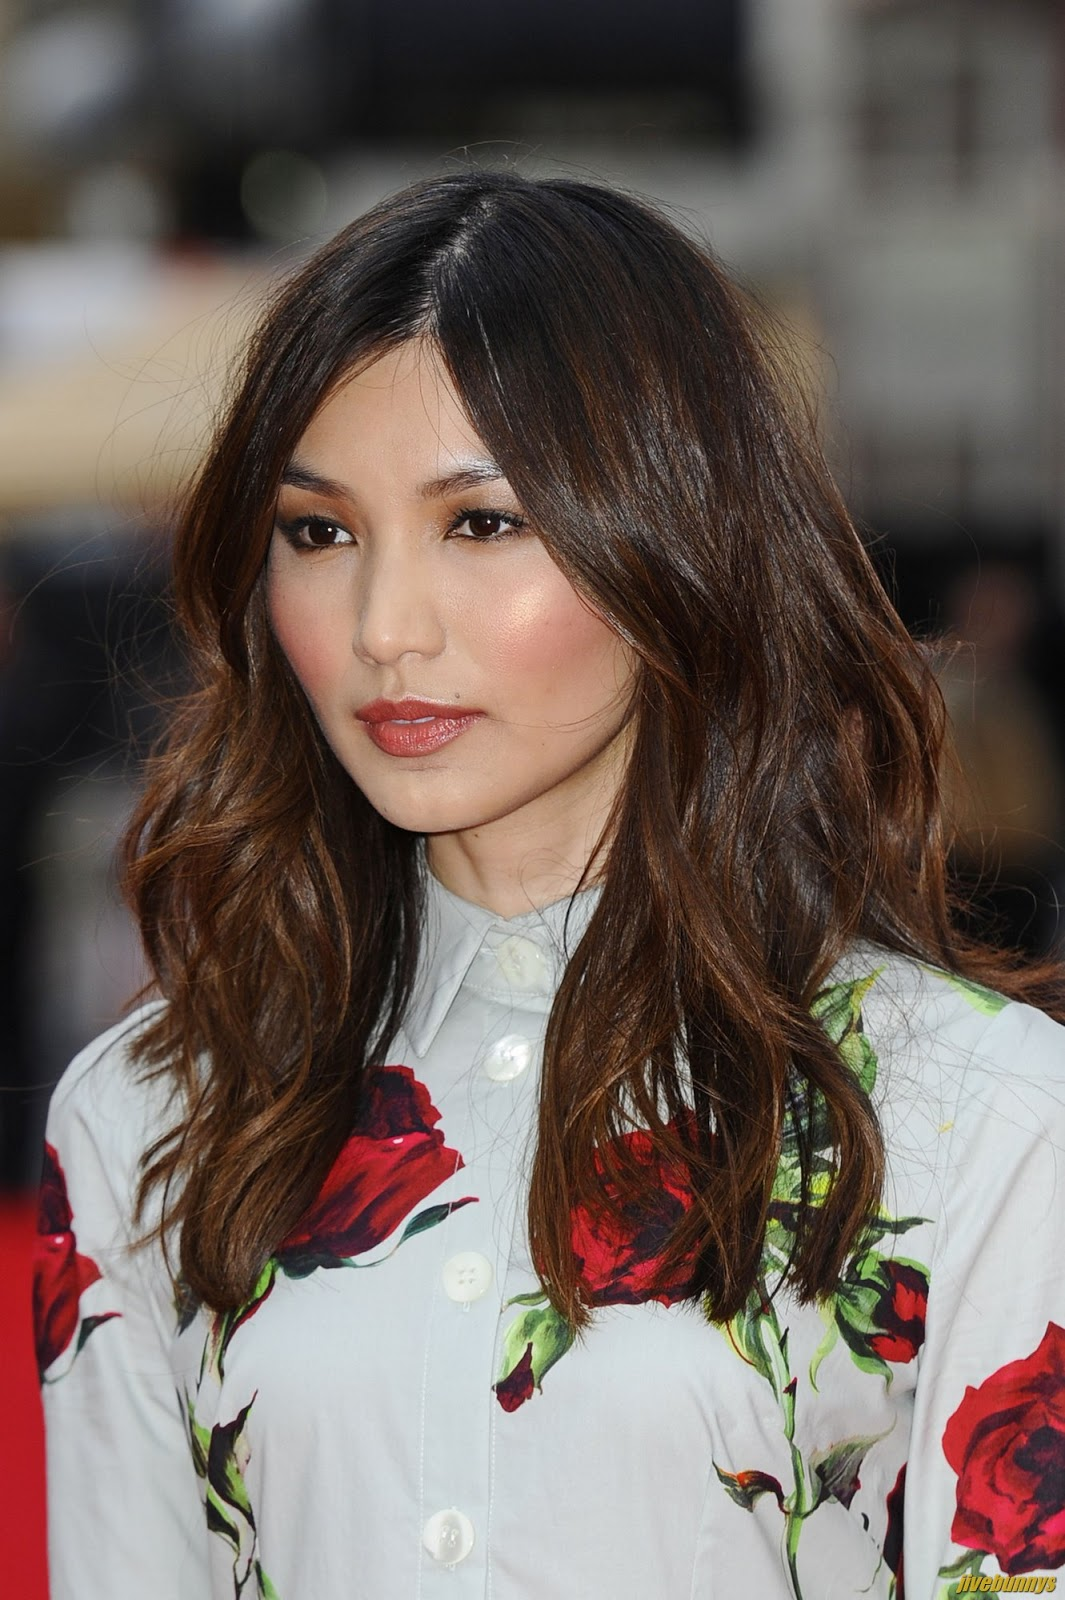 Jivebunnys Female Celebrity Picture Gallery: Gemma Chan ... Beyonce Knowles